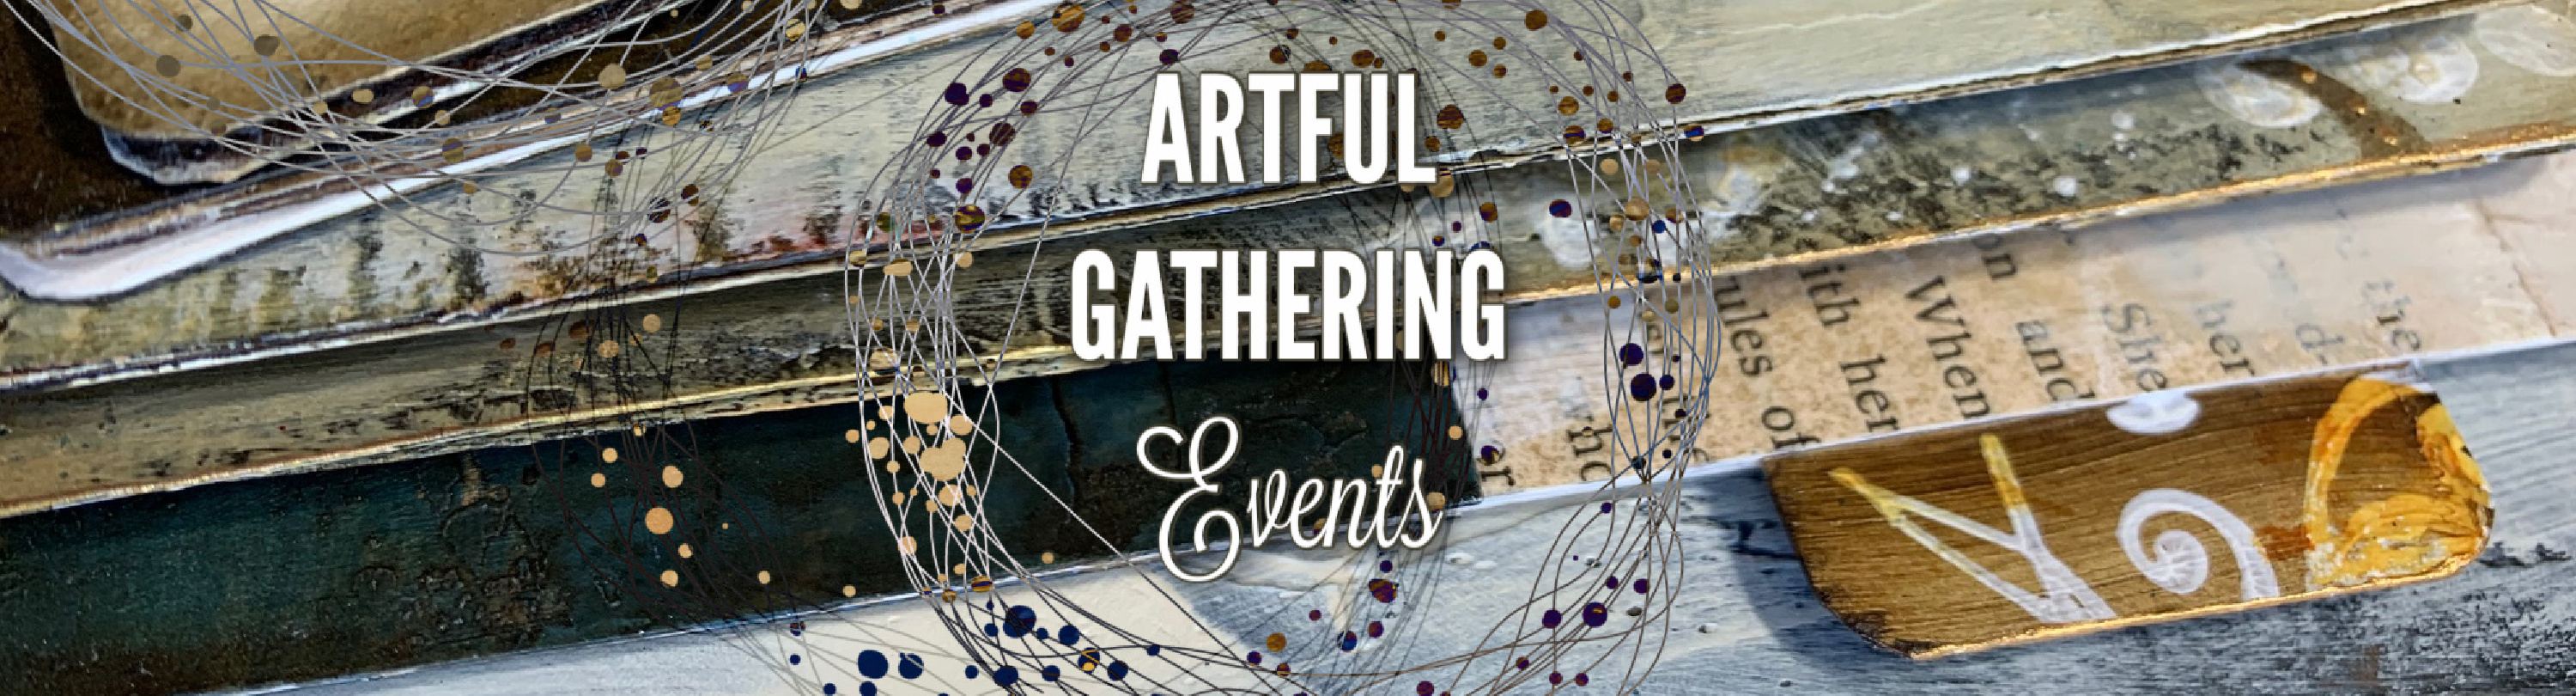 Artful Gathering Events Logo